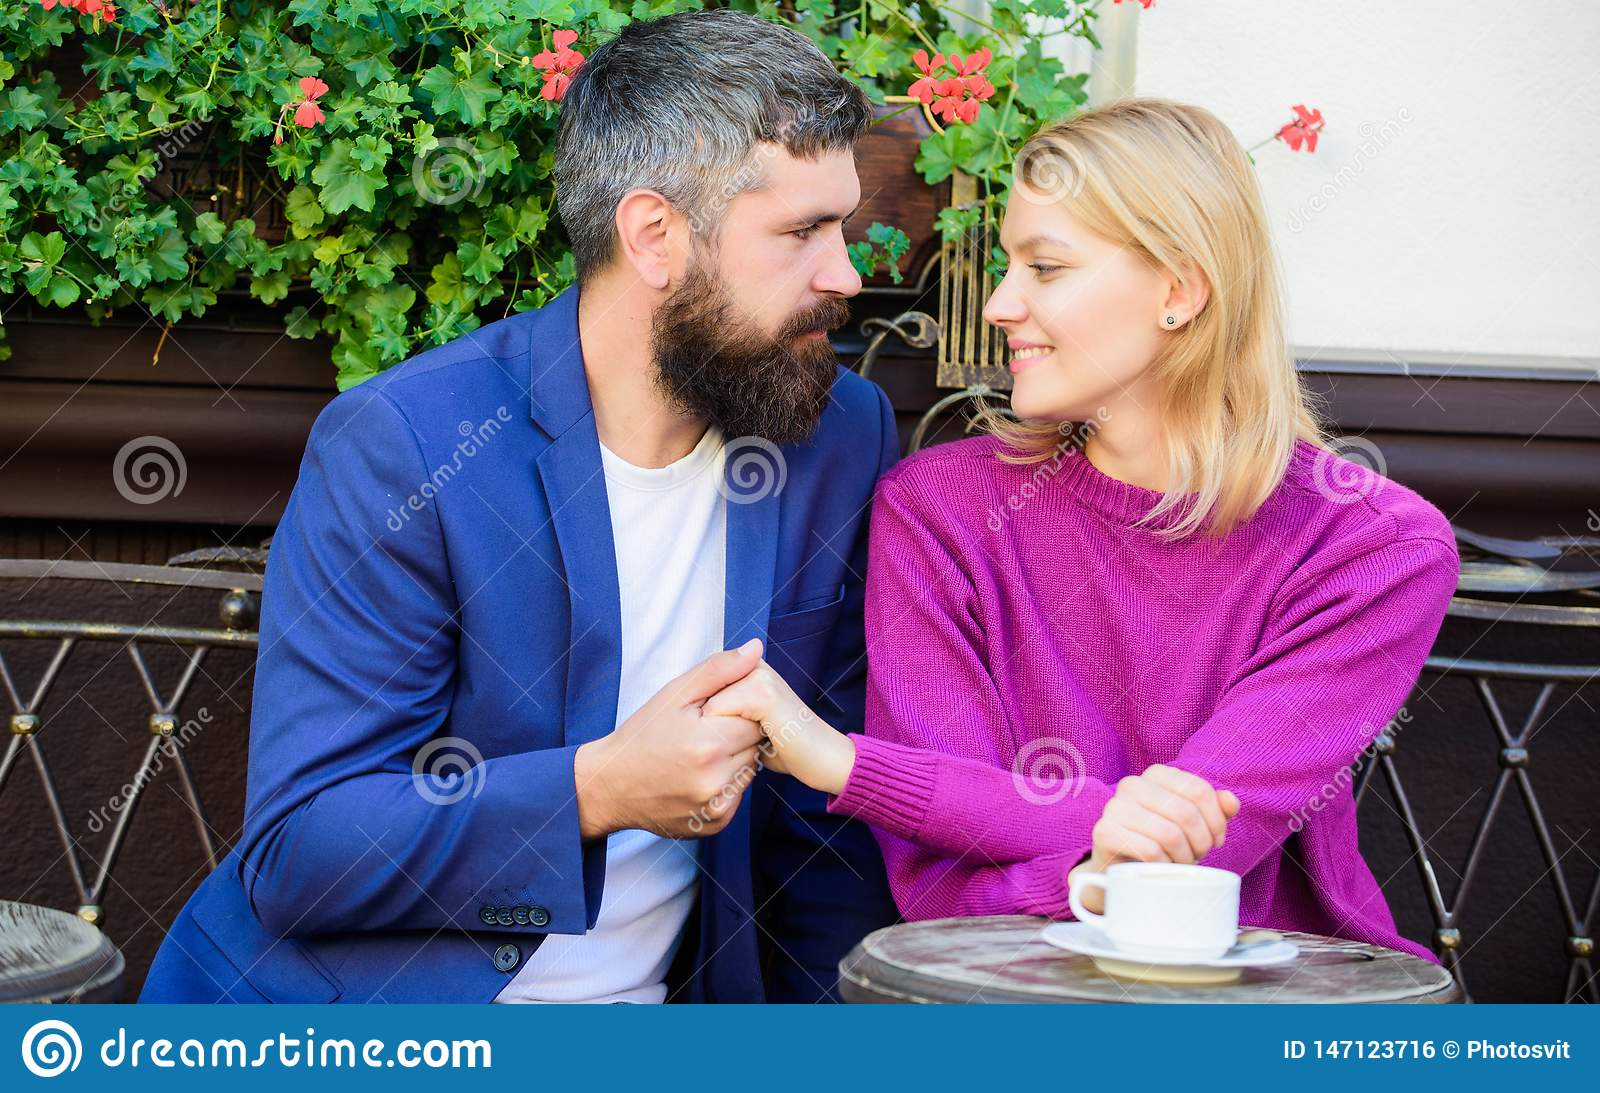 Casual meet acquaintance public place. Romantic couple. Normal way to meet and connect with other single people. Meet